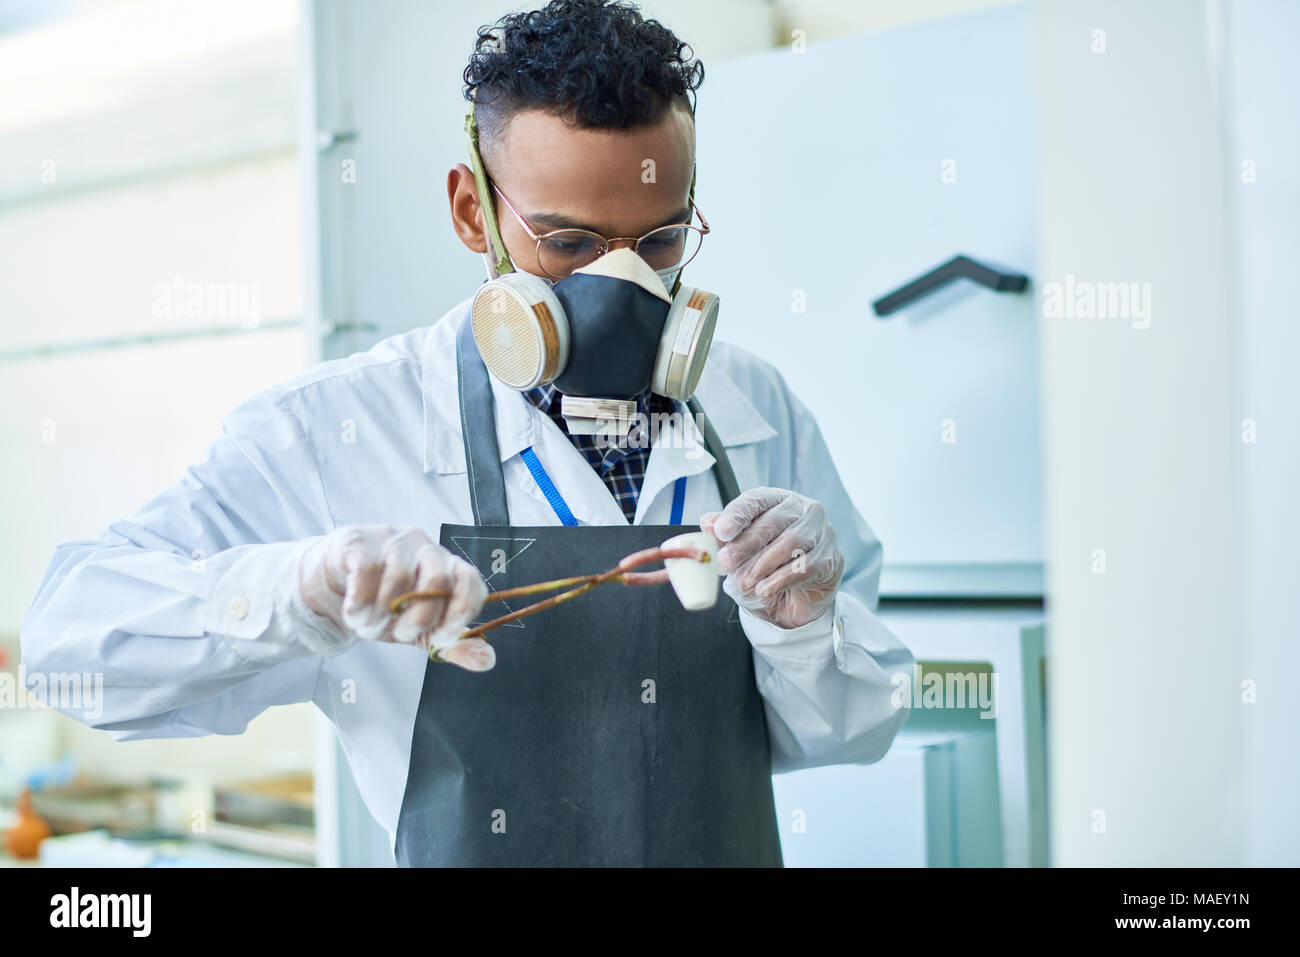 Heating chemical substance - Stock Image